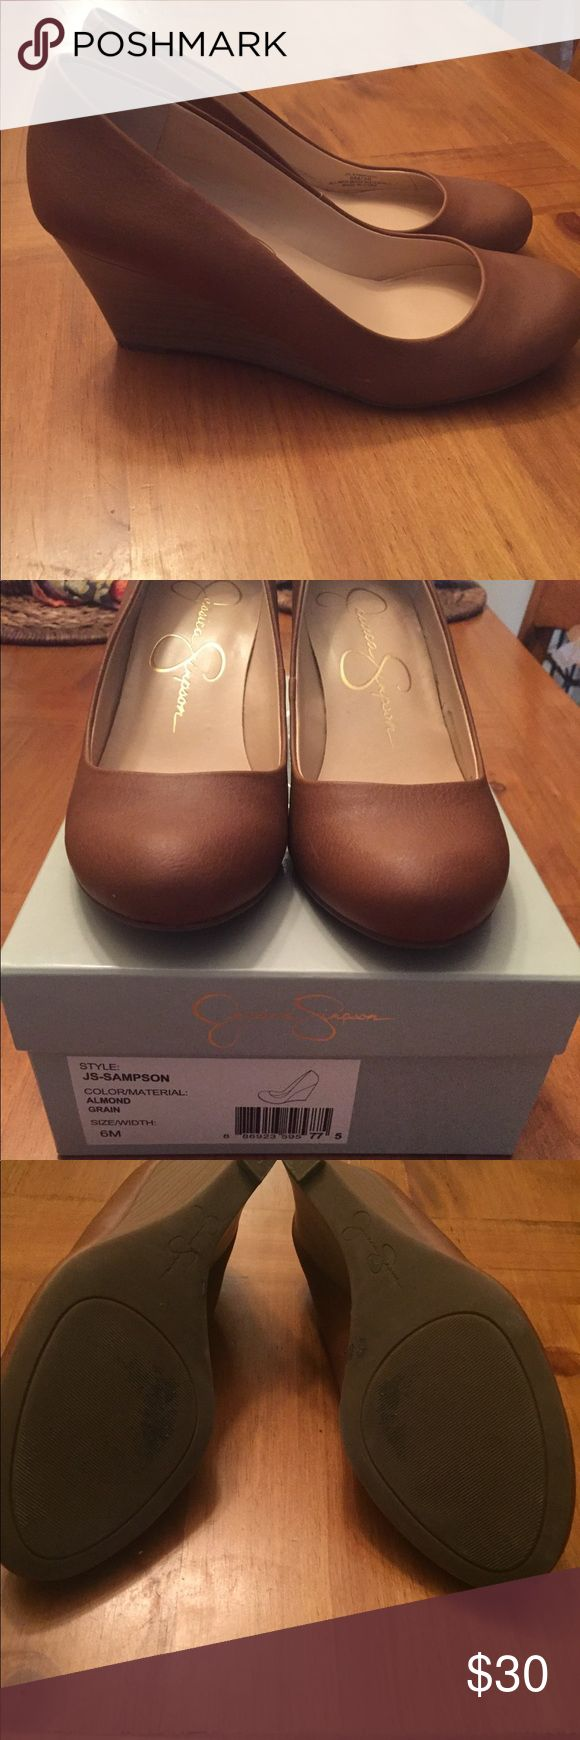 Jessica Simpson Sz 6 Brown Leather Wedges 2.5 inch wooden wedge heel with almond leather material. I have this exact shoe in black too! Only worn once (just like brand new). These can be dressed up or down with jeans— super cute! Jessica Simpson Shoes Wedges